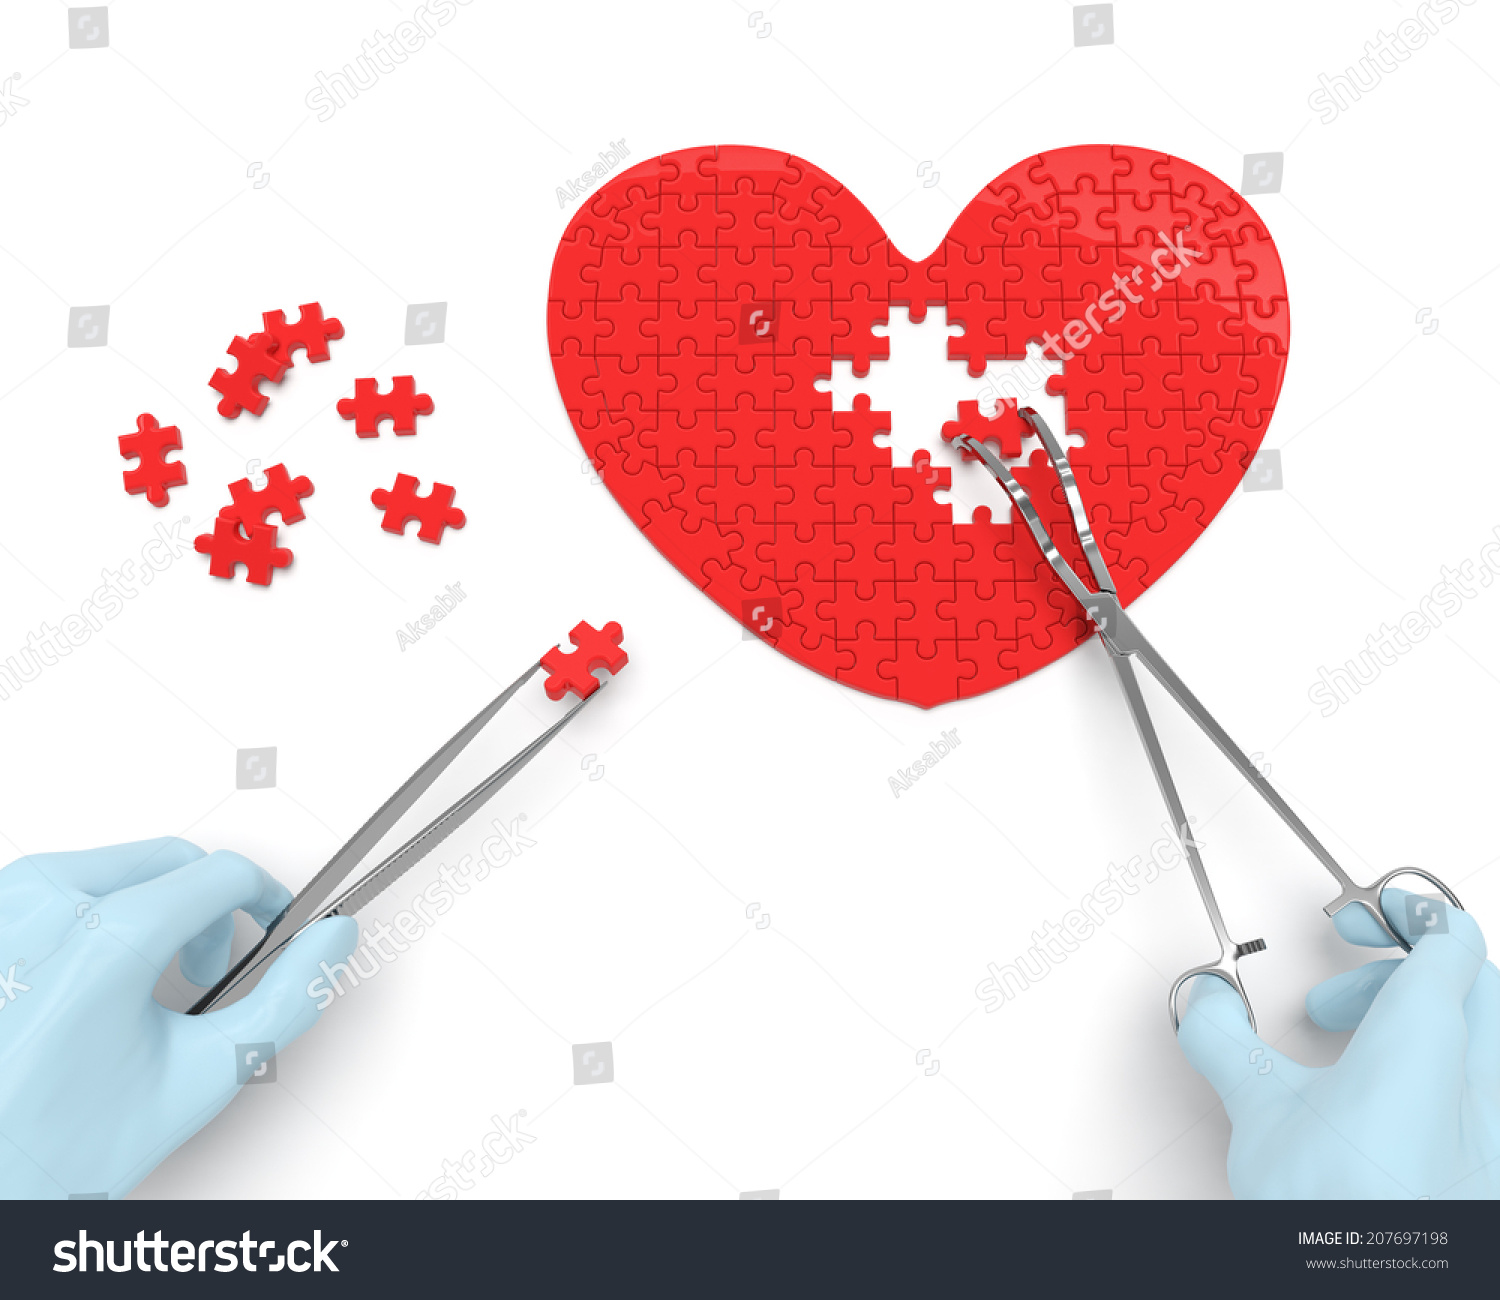 Heart Puzzle Hands Cardiac Surgeon Surgical Stock Illustration 207697198